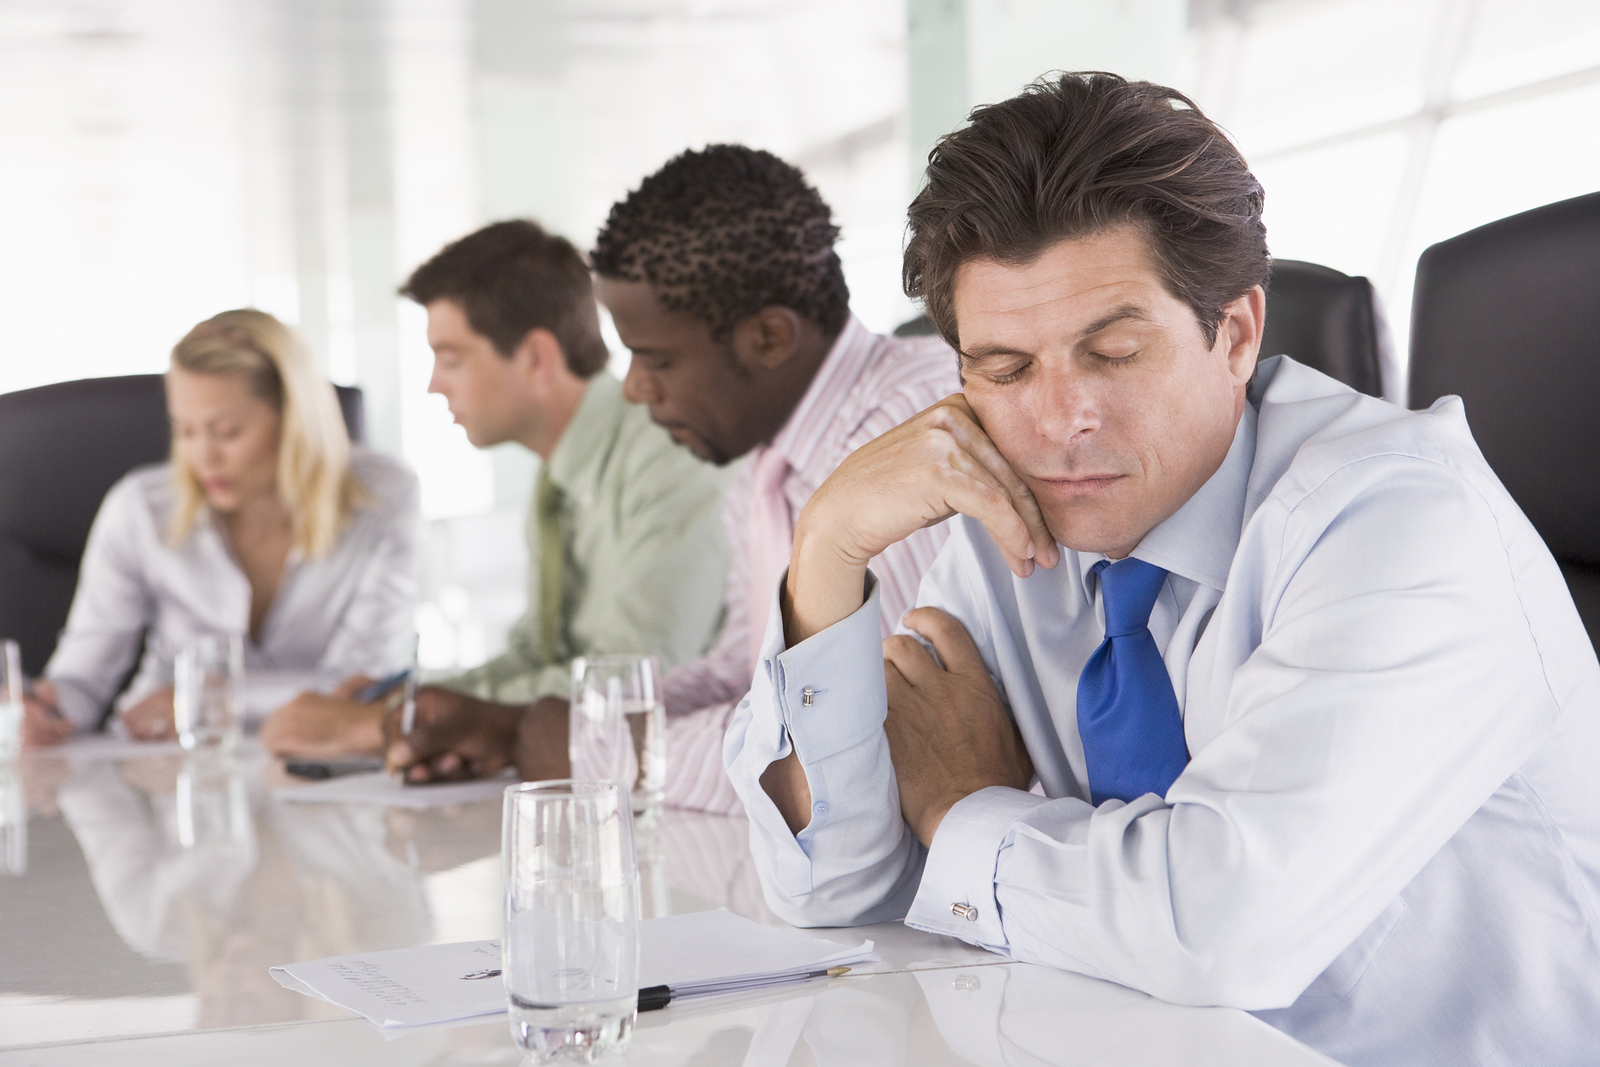 A man during a meeting wastes time by not paying attention.